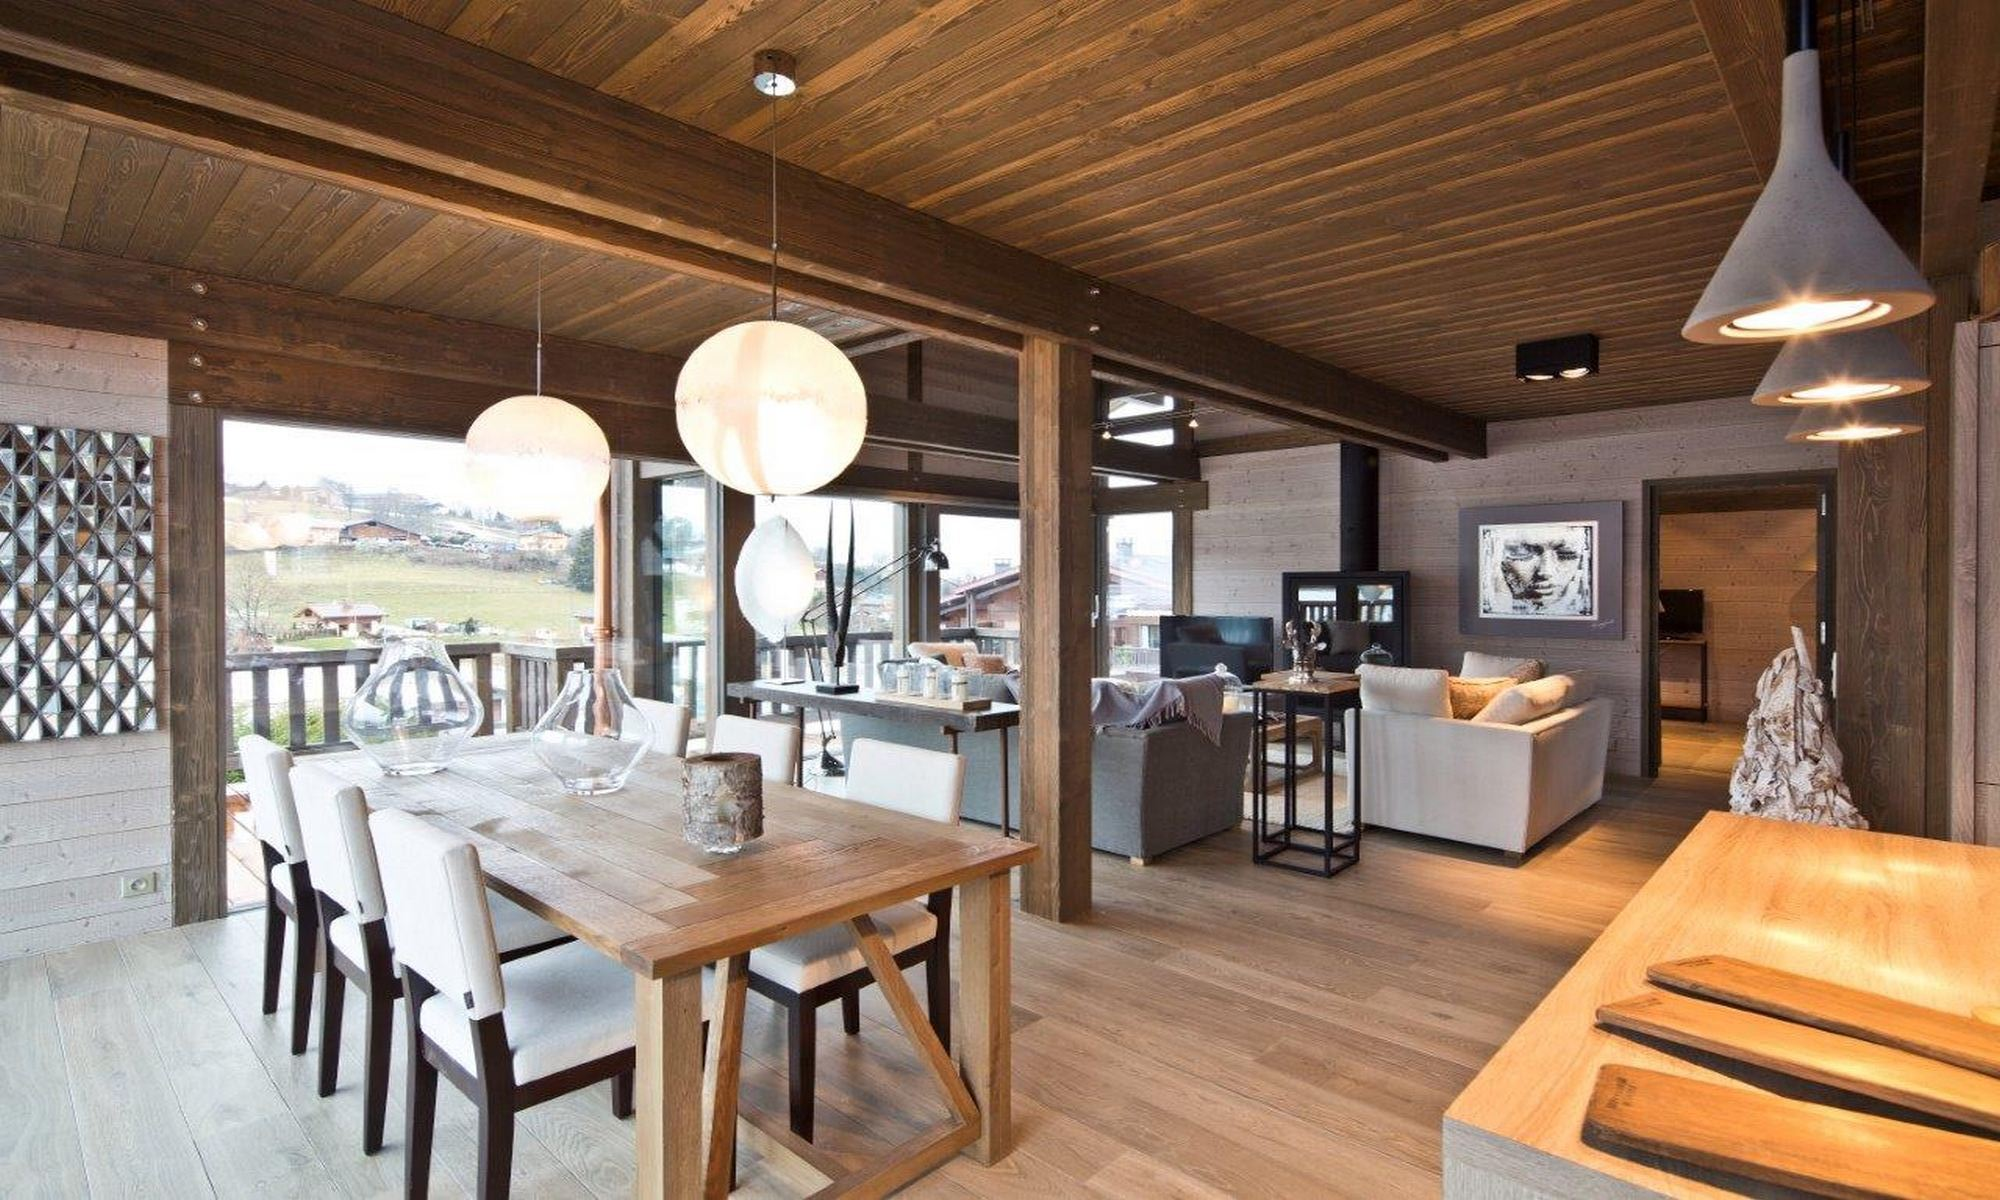 Single Family Home for Sale at Megève Demi Quartier Chalet Ebene Megeve, Rhone-Alpes, 74120 France